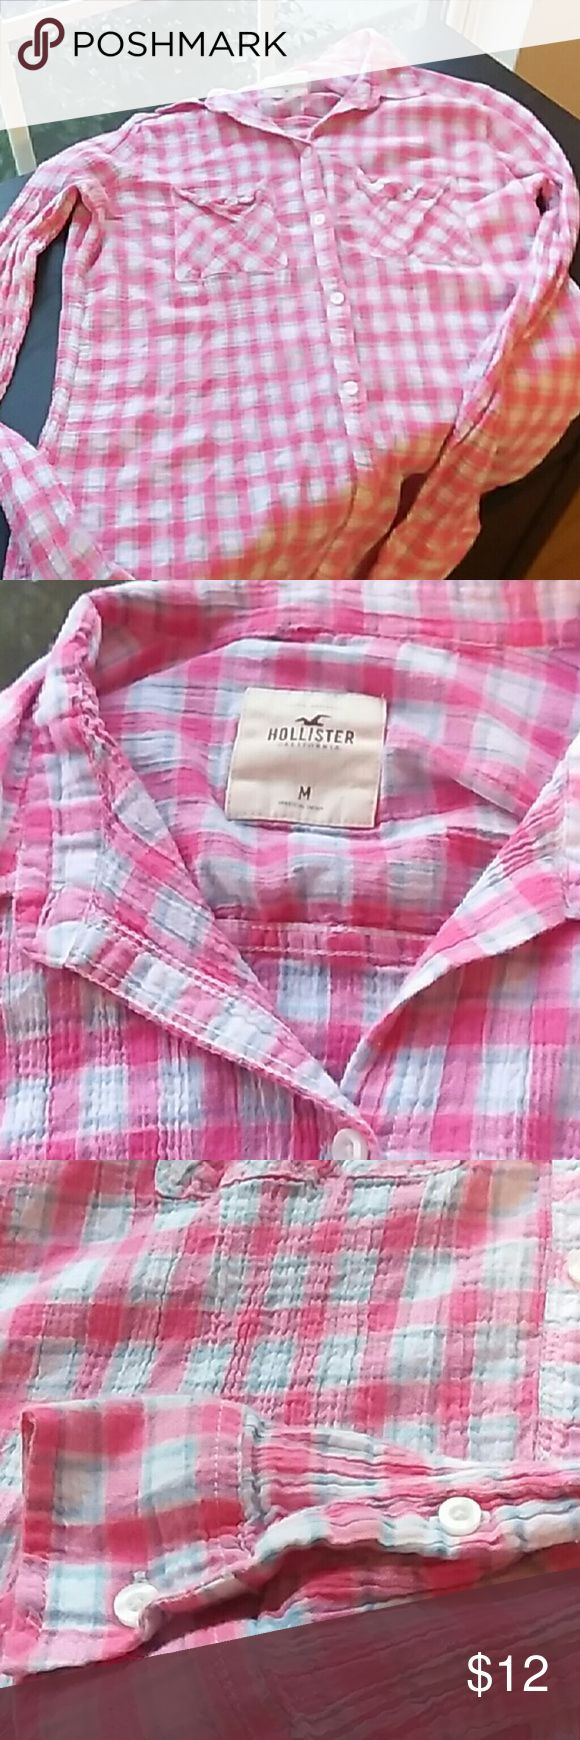 Woman's Medium Hollister Long Sleeve Pink,  light blue and white long sleeve button down shirt in excellent condition with no stains or tears and comes from a smoke and pet free home. Soft and comfy material. Don't agree with the price? Make offer! Hollister Tops Button Down Shirts